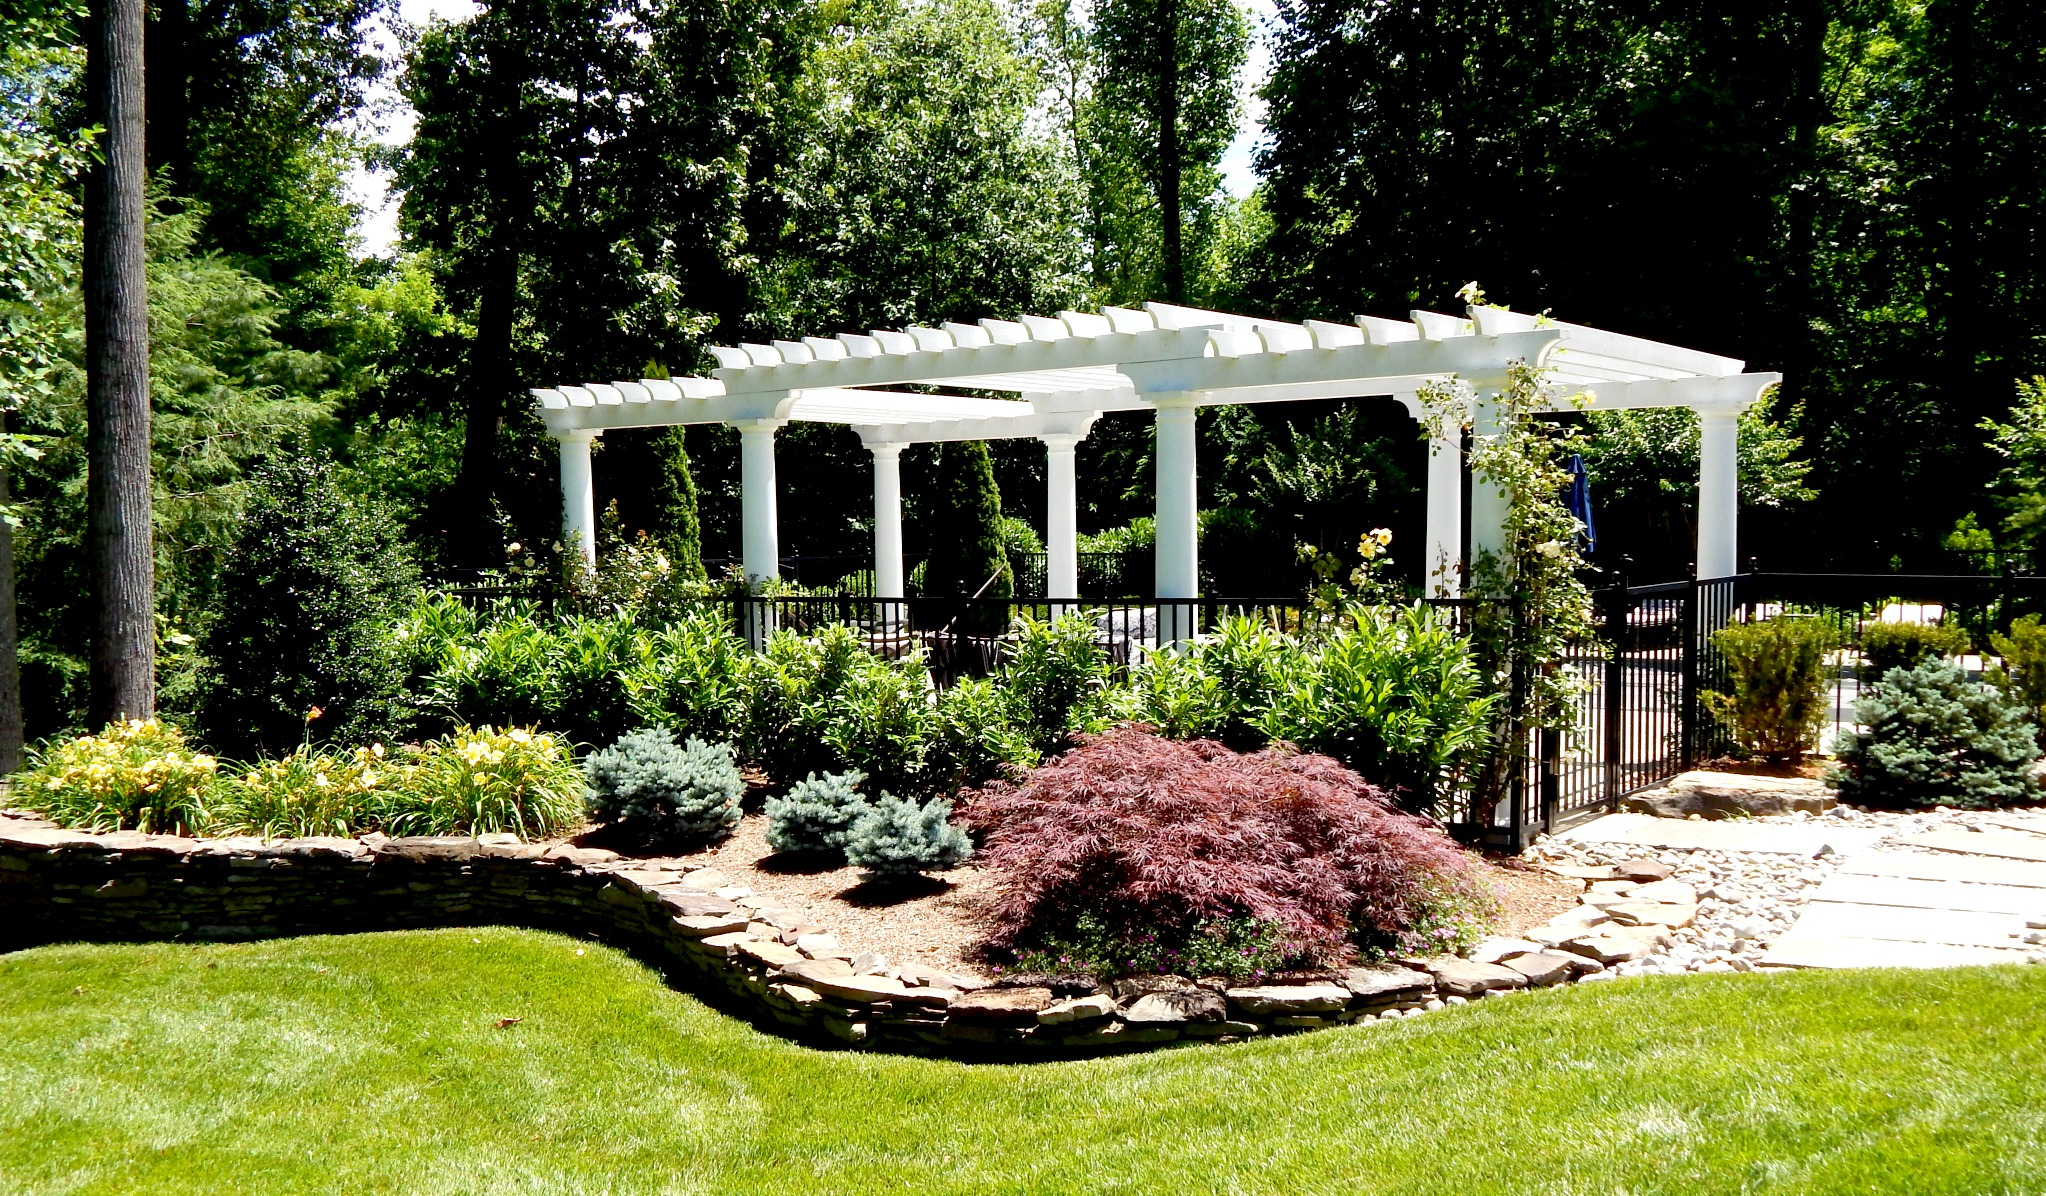 How To Start Landscaping Around House: Photo courtesy of legal ...